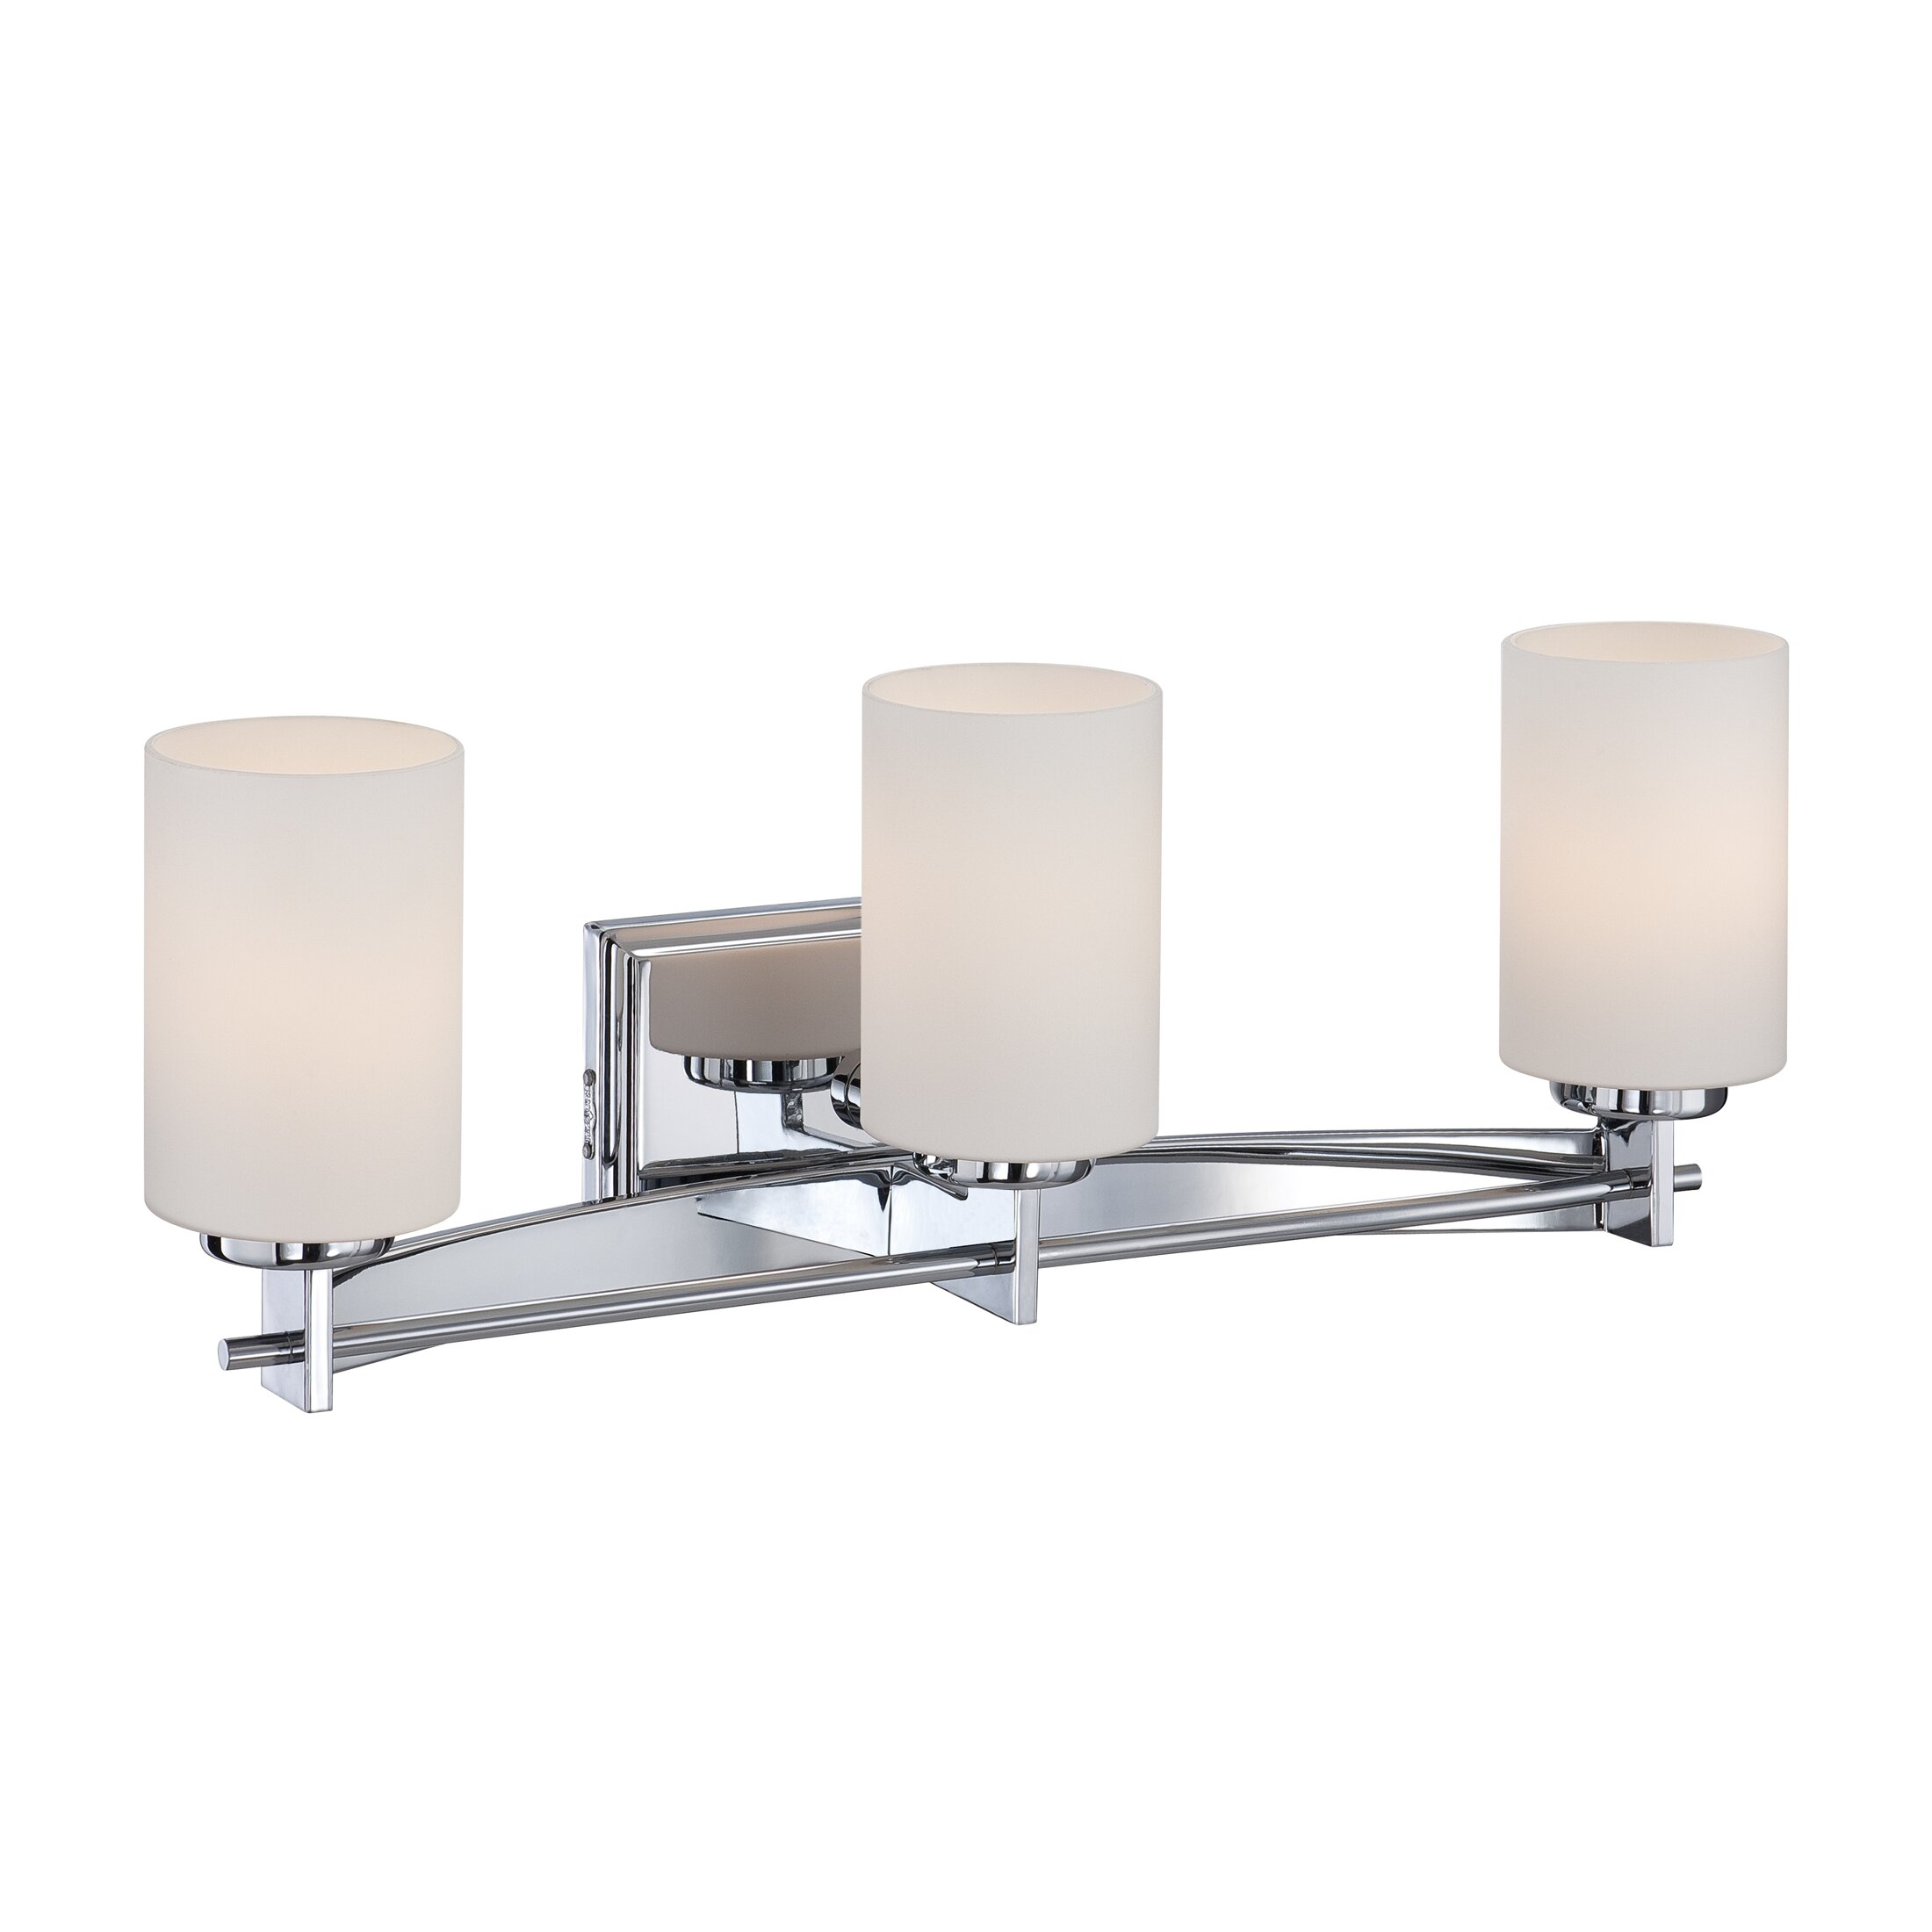 Quoizel Vanity Lights : Quoizel Taylor 3 Light Vanity Light & Reviews Wayfair